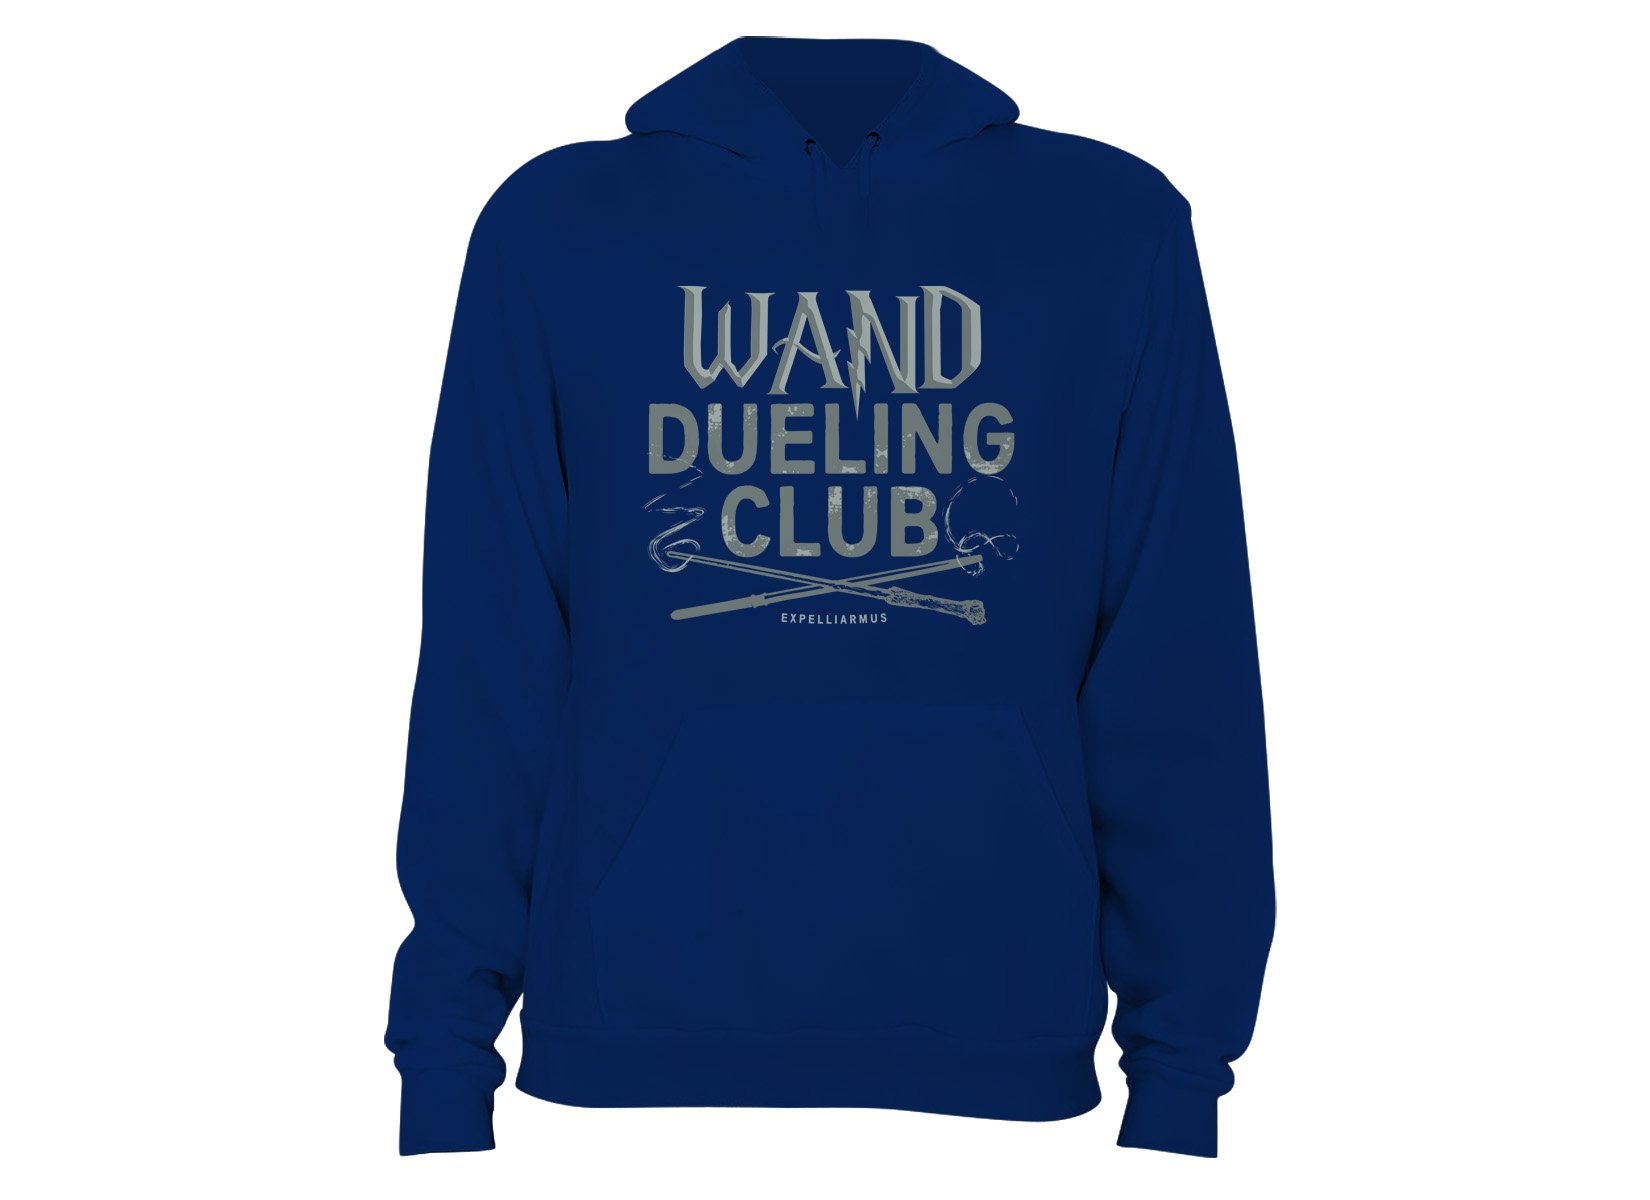 Wand Dueling Club on Hoodie